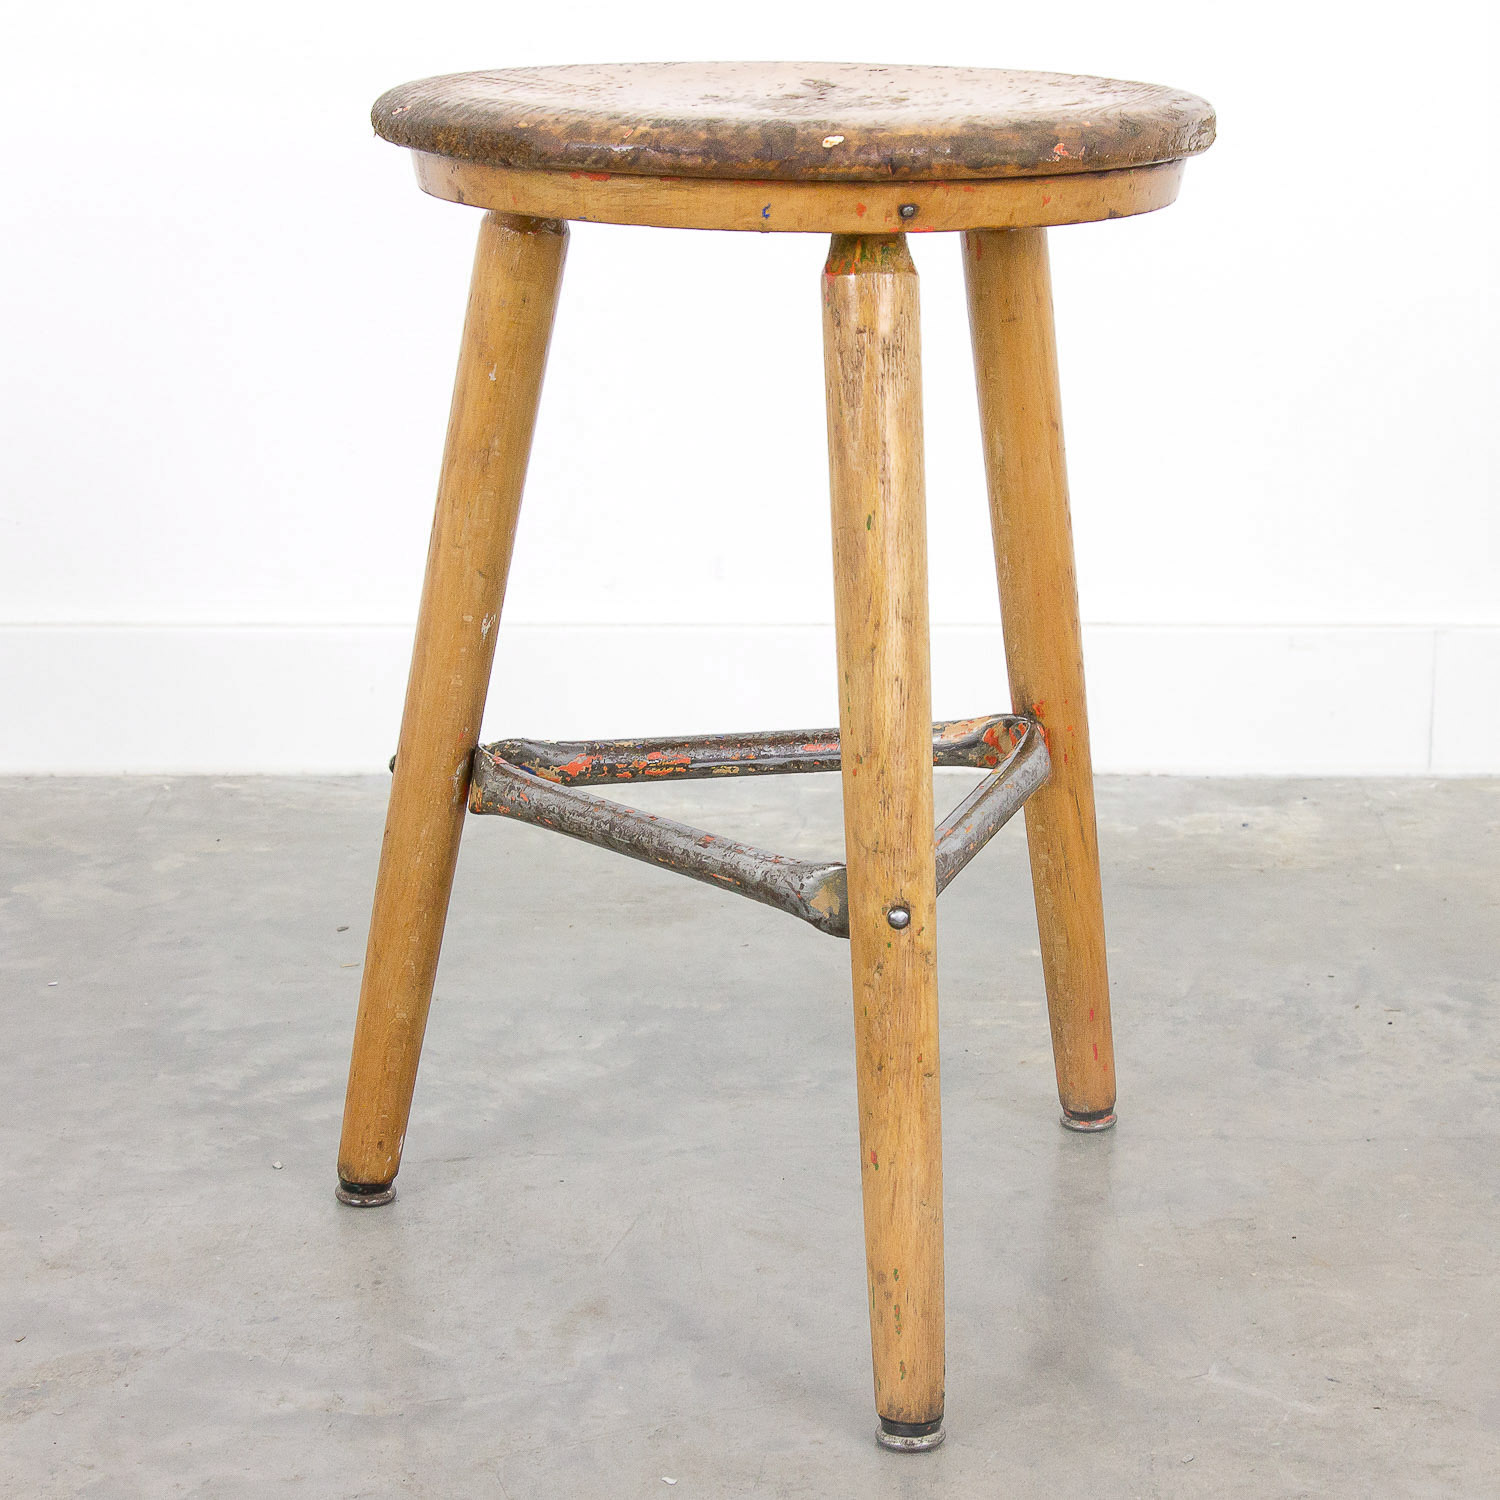 Vintage wooden stool by Hohenloher